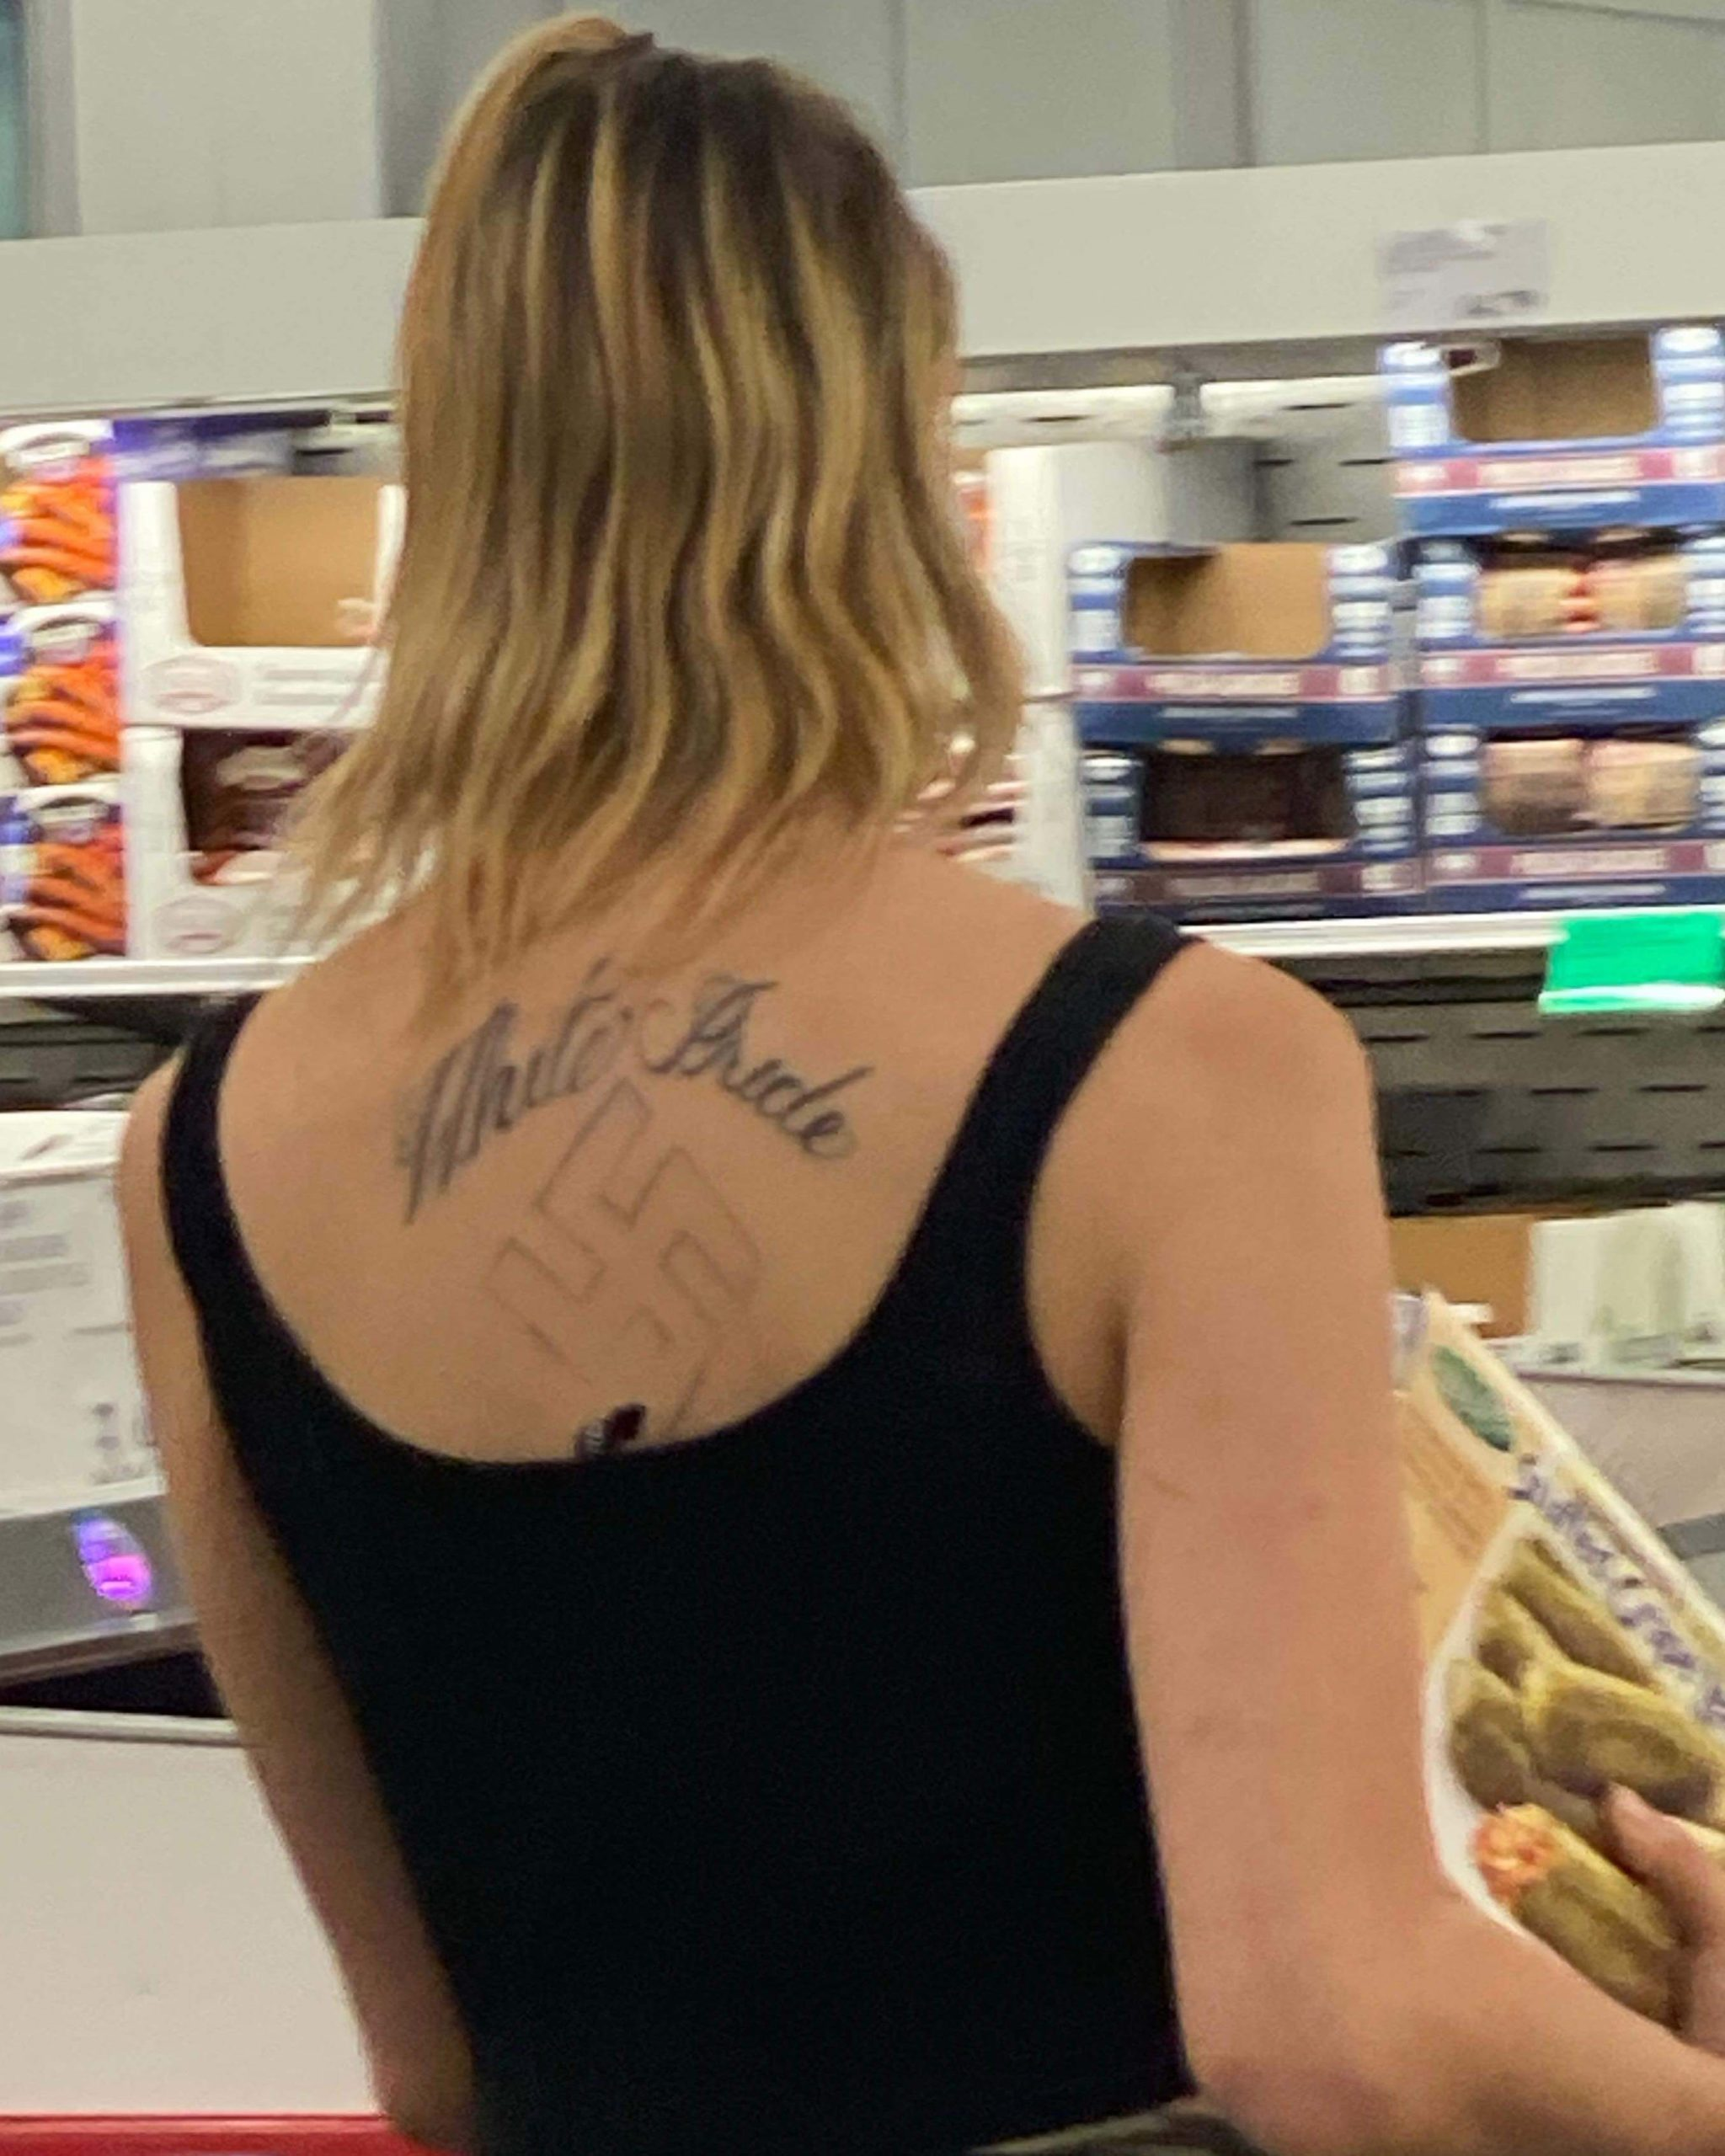 """Woman with """"White Pride"""" tattoo and Nazi symbol shopping at Costco in Mission Valley."""